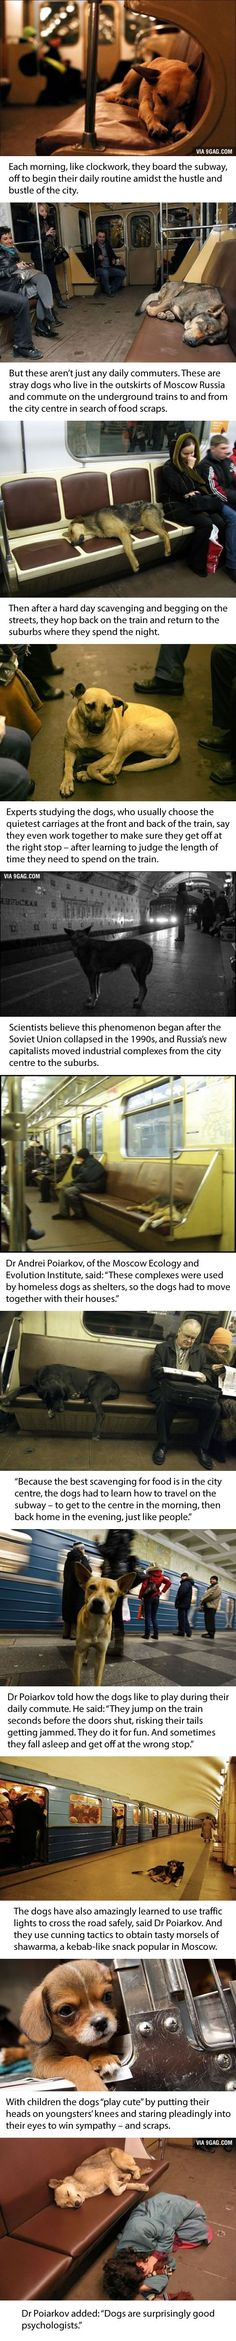 Dogs in Russia - I don't know if any of this is true, but if so, it's both amazing and sad.  Dogs are better (and smarter) than a lot of humans!